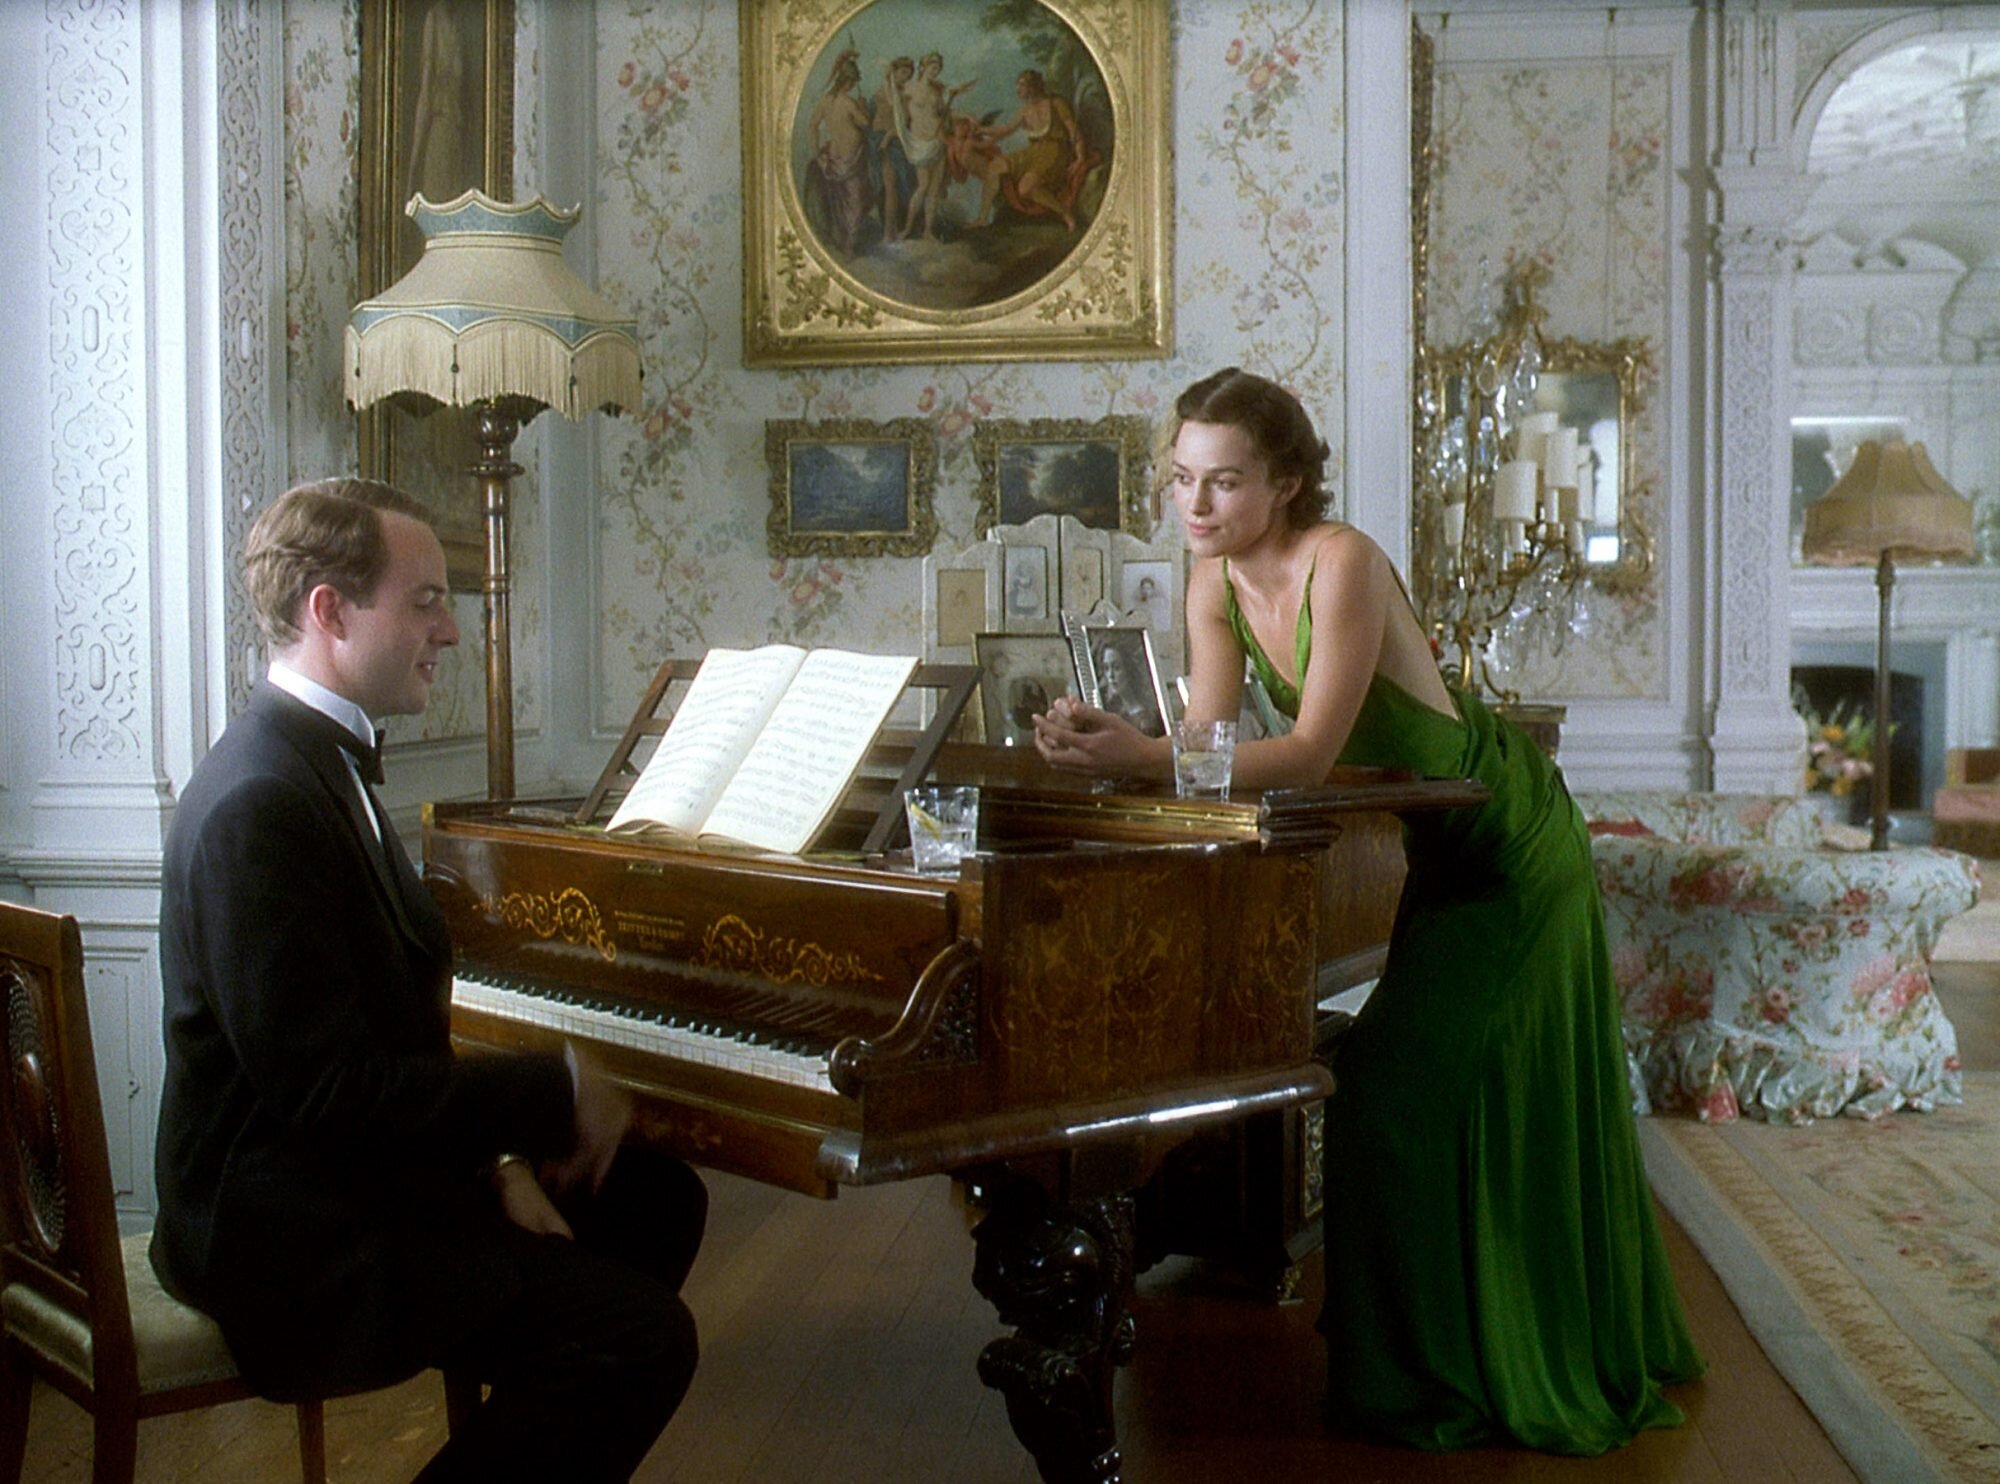 3 words.  The Green Dress . If you have no other reason to watch this film make sure you watch it for this dress alone. This dress must be one of the most elegant dresses made for film of all time and no one else could pull it off quite like Keira Knightley does. This dress has always stuck with us, and with so many others too it seems, as around the time the film was released, it was voted the greatest film costume ever in a Sky Movies/ In Style poll. Over a decade later, it's still regarded as one of the all-time greats.     We hope you enjoy watching these films and costumes - please let us know your thoughts in the comments below!